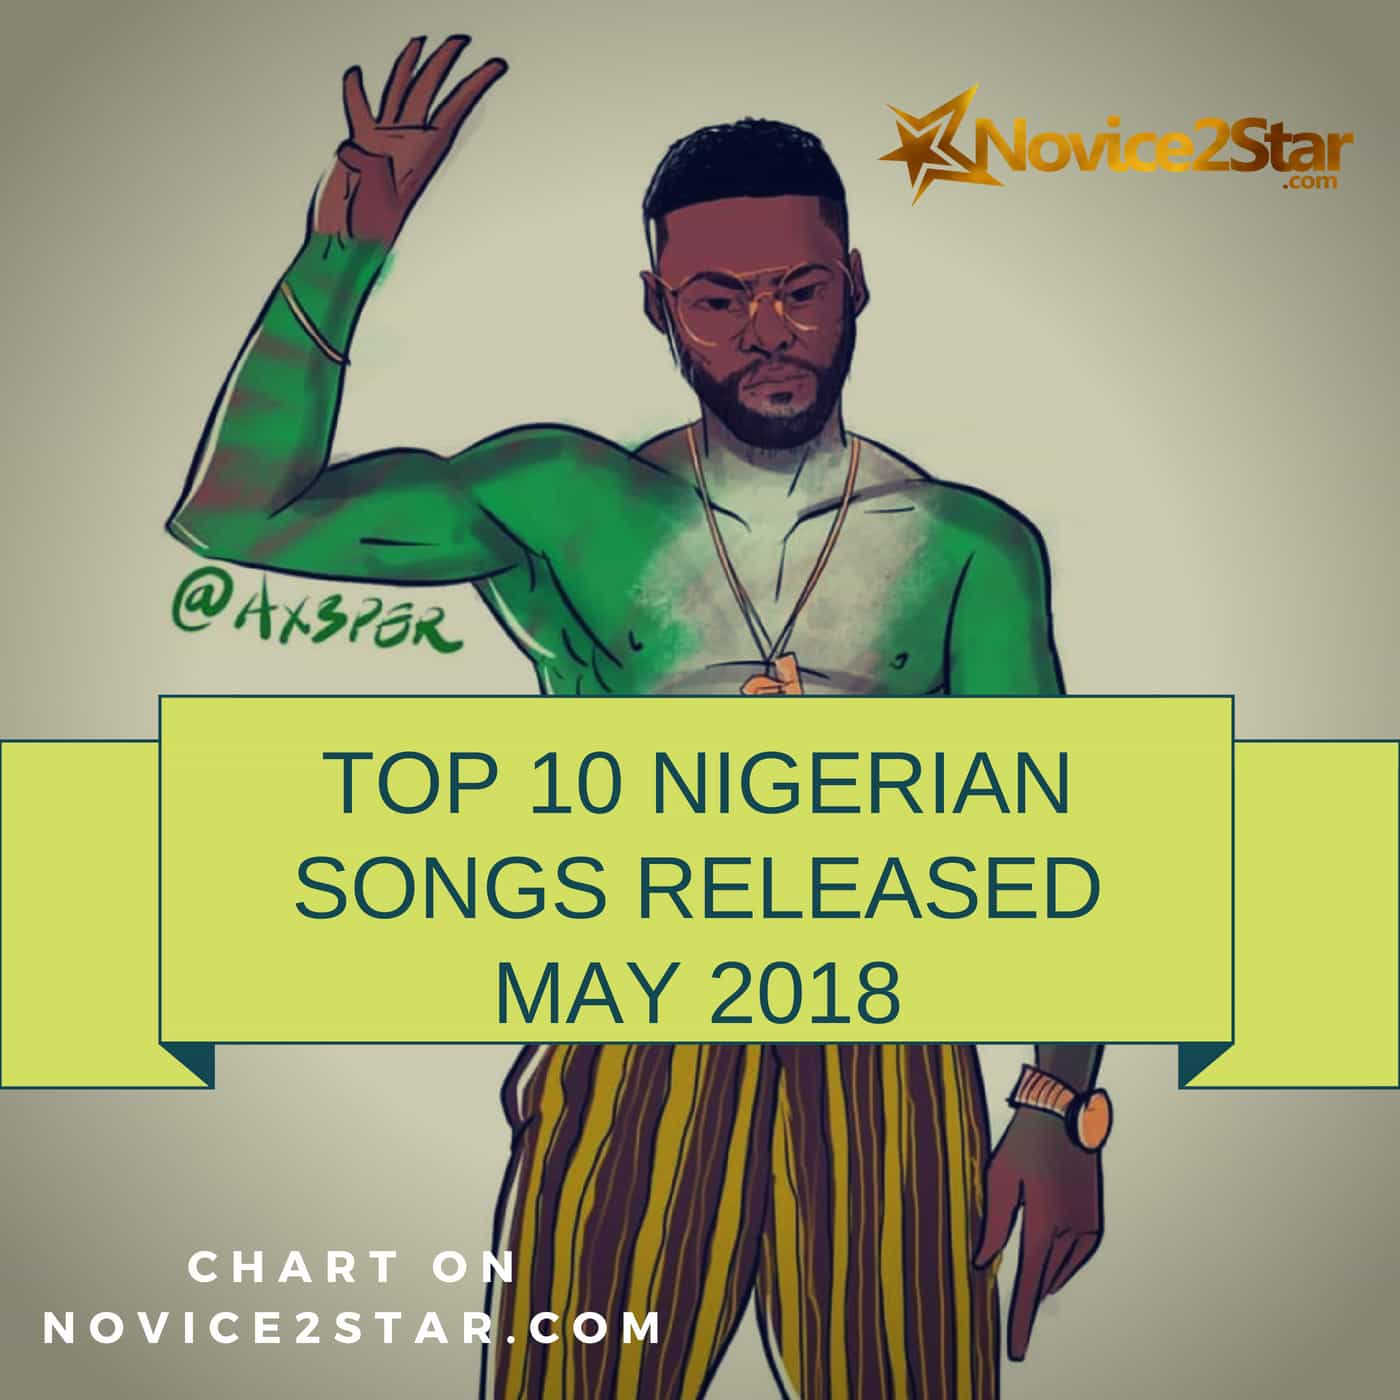 Top 10 nigerian naija songs released may 2018 - Welcome to the ghetto instrumental ...